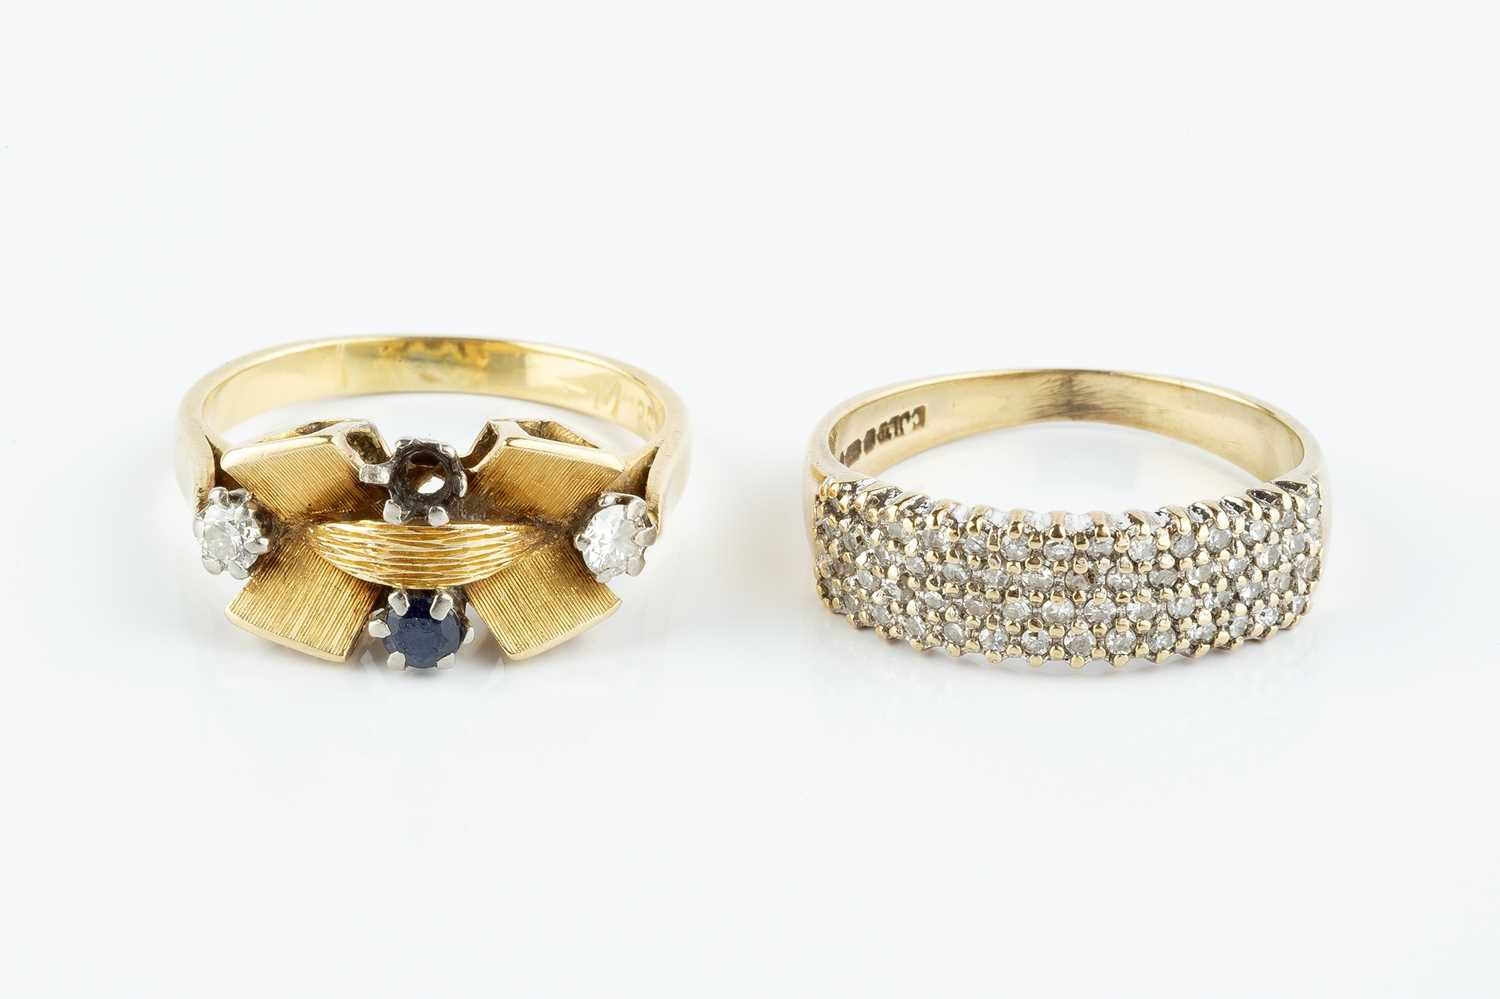 A sapphire and diamond dress ring, highlighted with a circular mixed-cut sapphire and two round